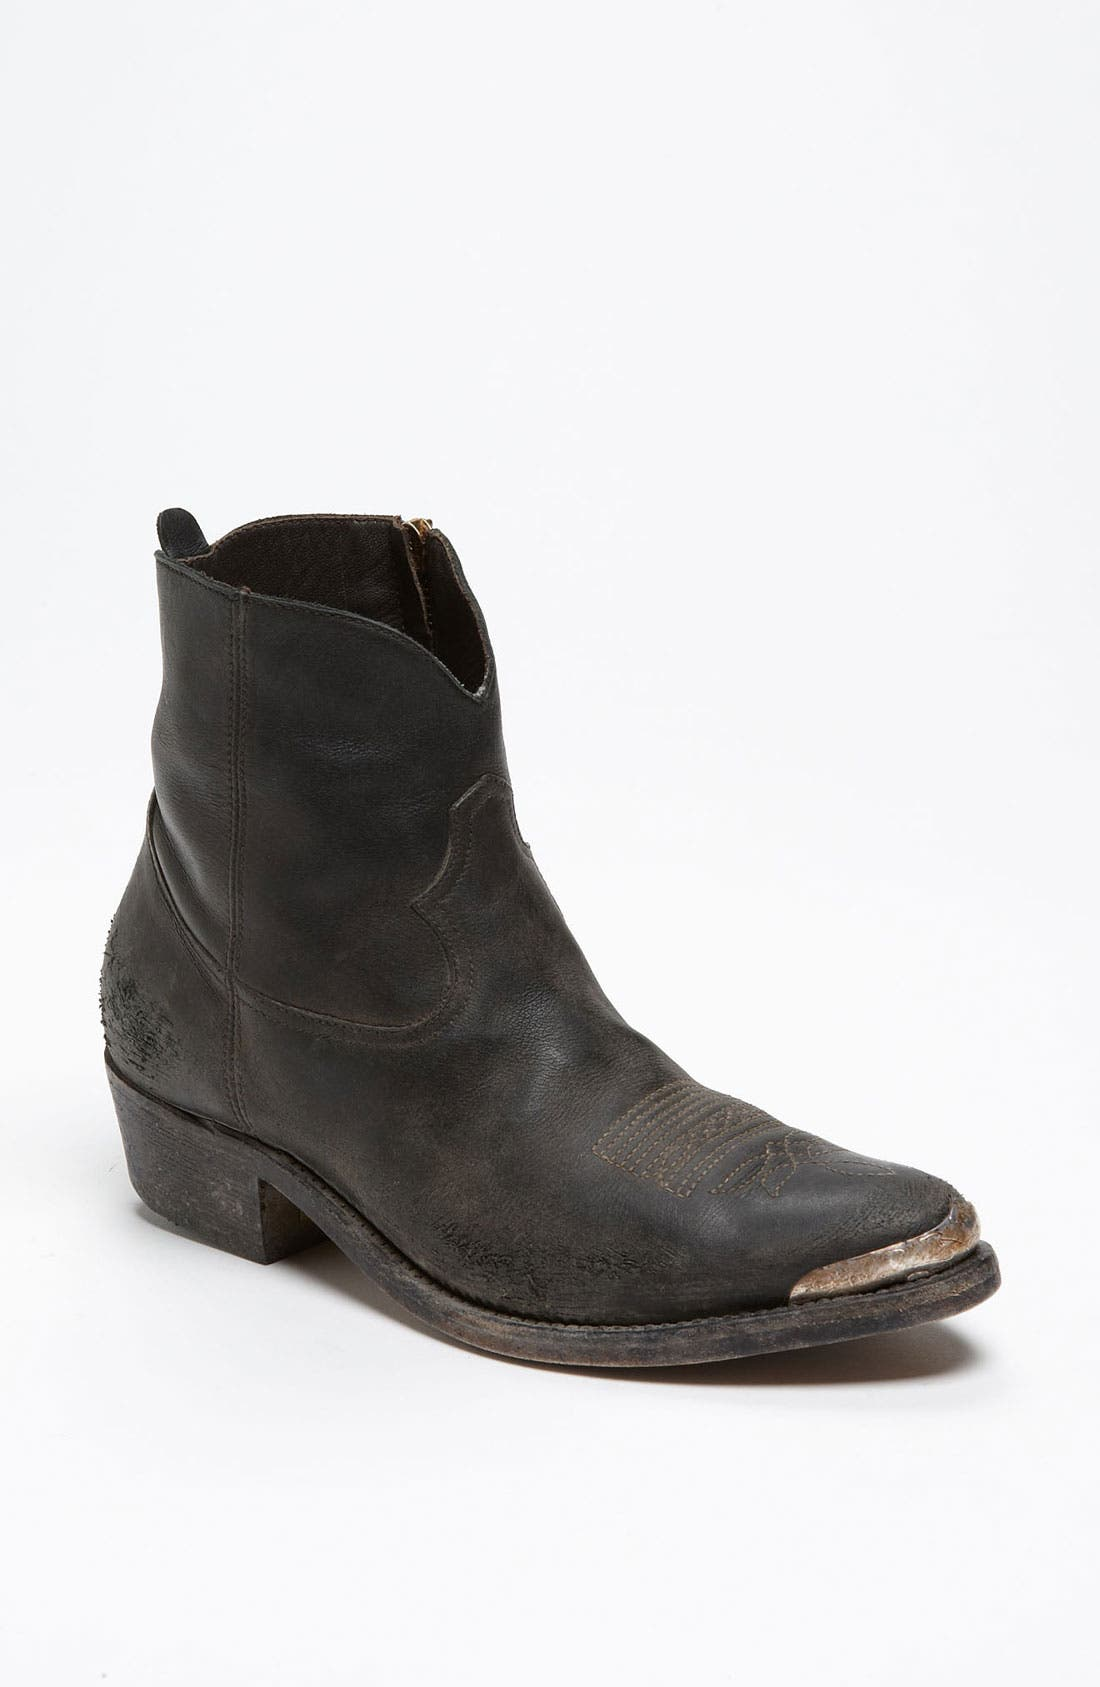 Alternate Image 1 Selected - Golden Goose 'Young Western' Boot